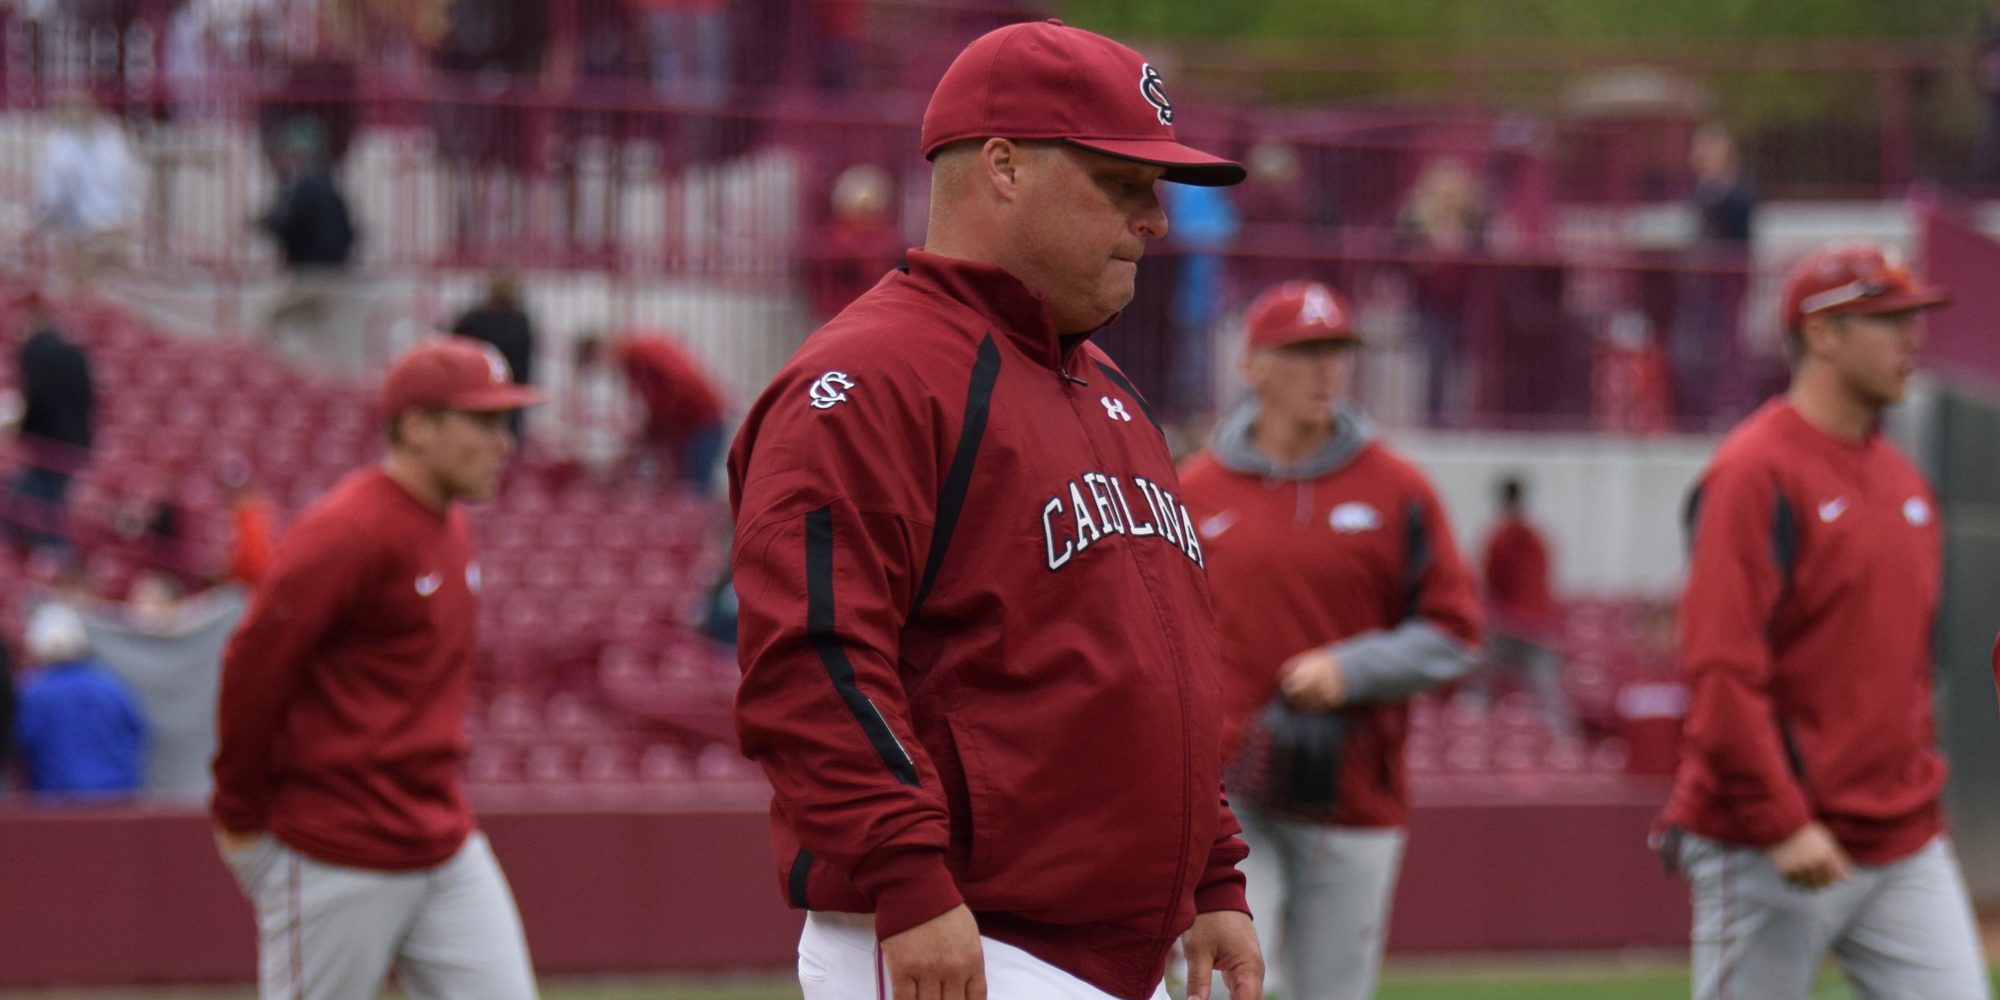 South Carolina's Holbrook resigns as baseball coach